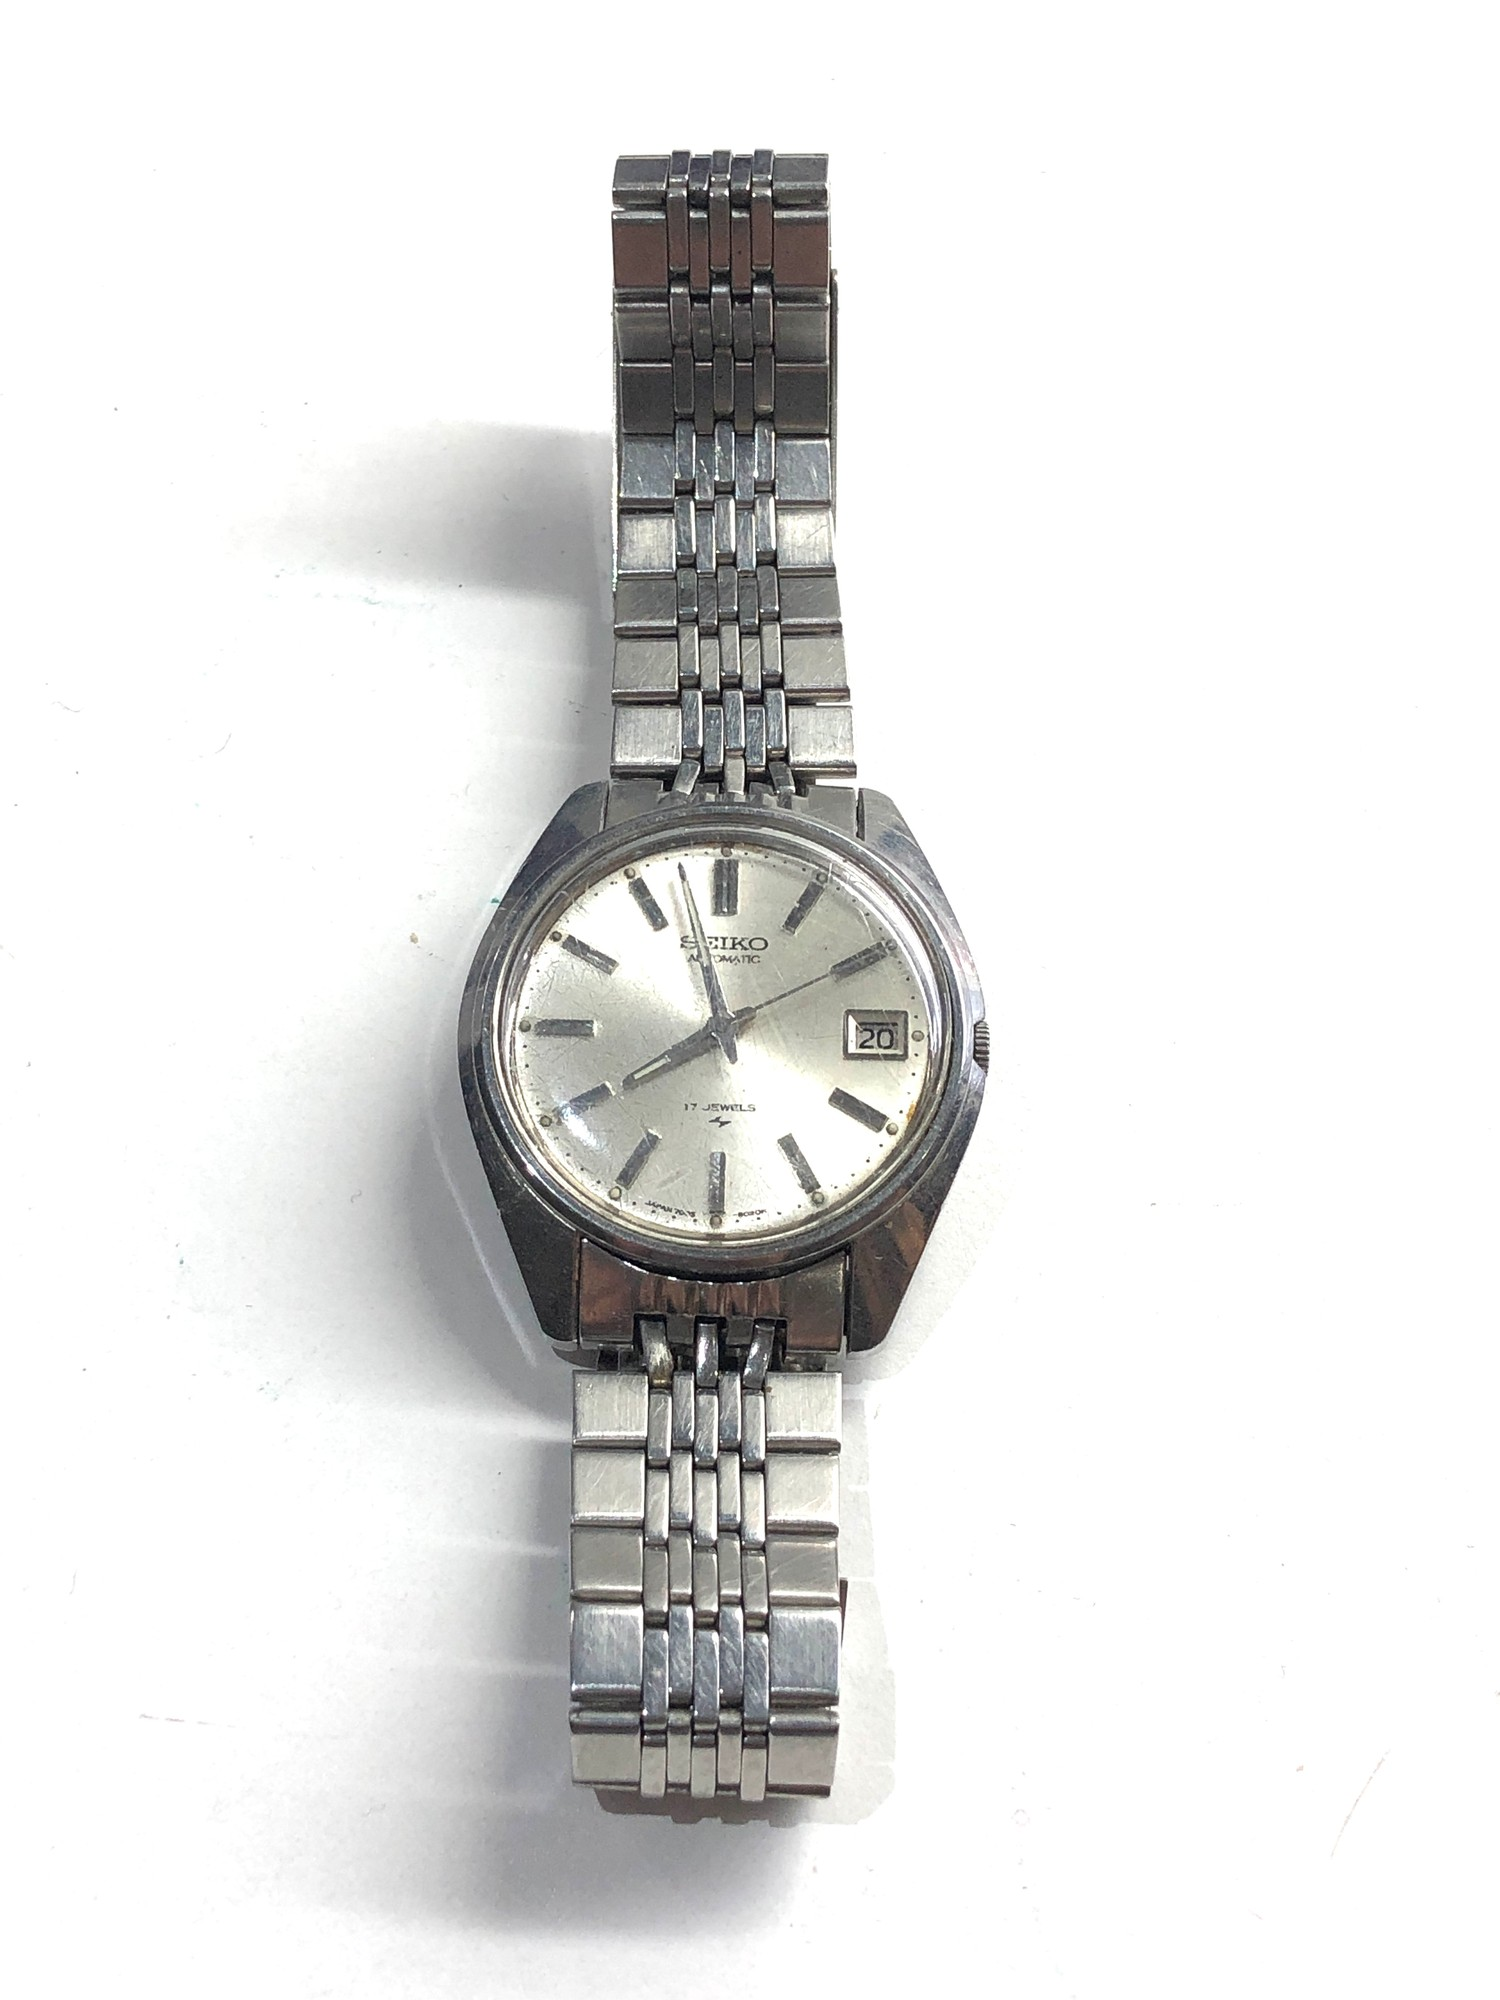 Vintage s-steel 1970's Seiko 7005-8022 classic 17 Jewel automatic Datejust watch working order no